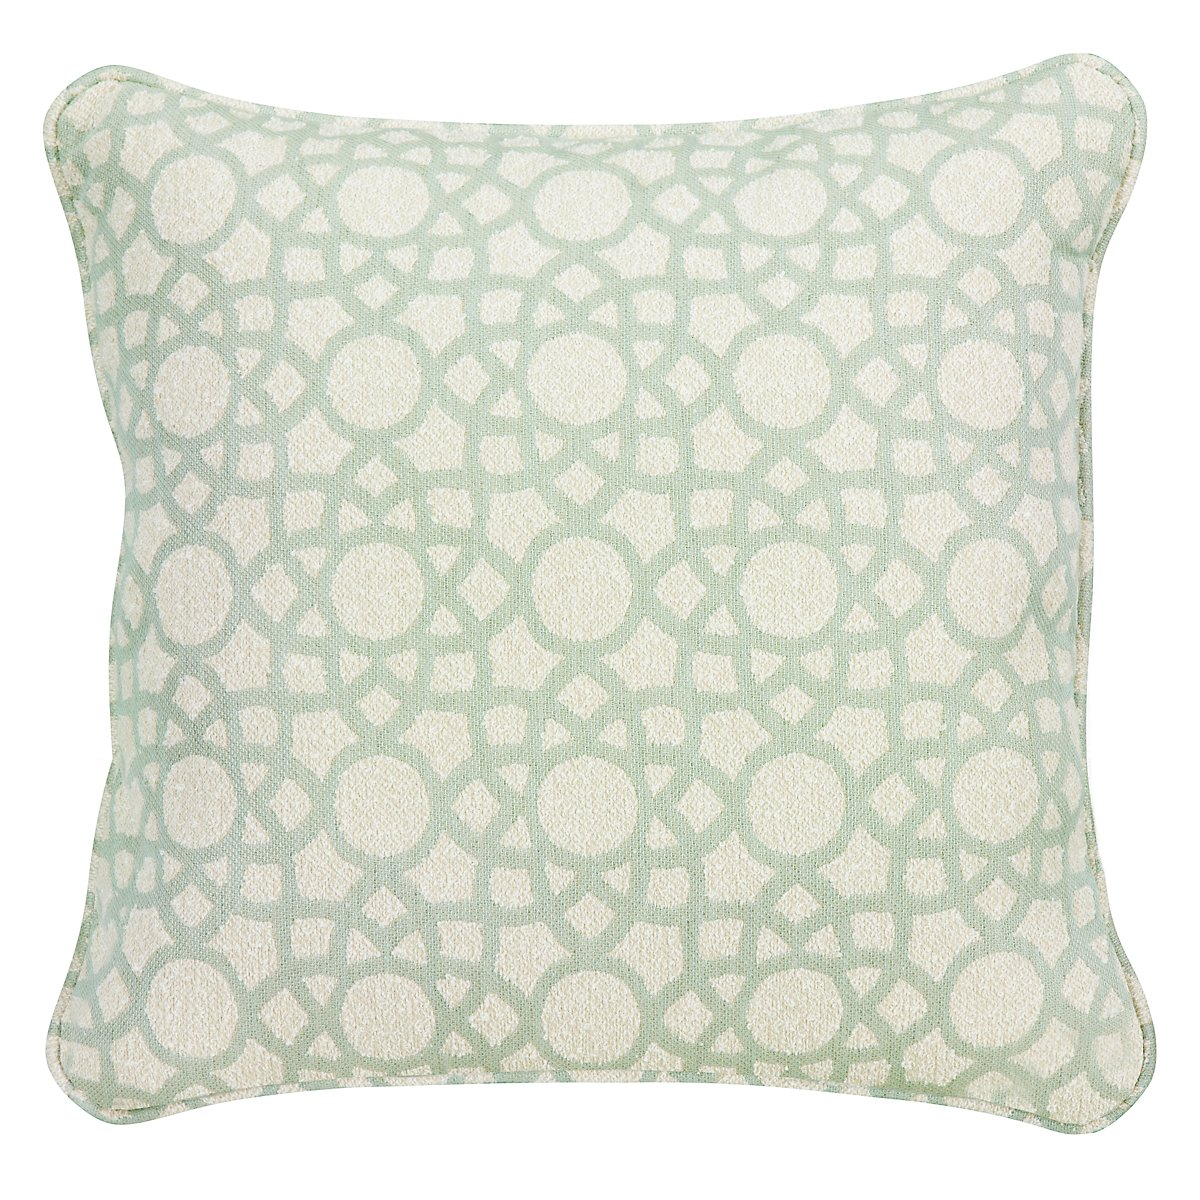 "Sophisticate Light Green 18"" Accent Pillow"